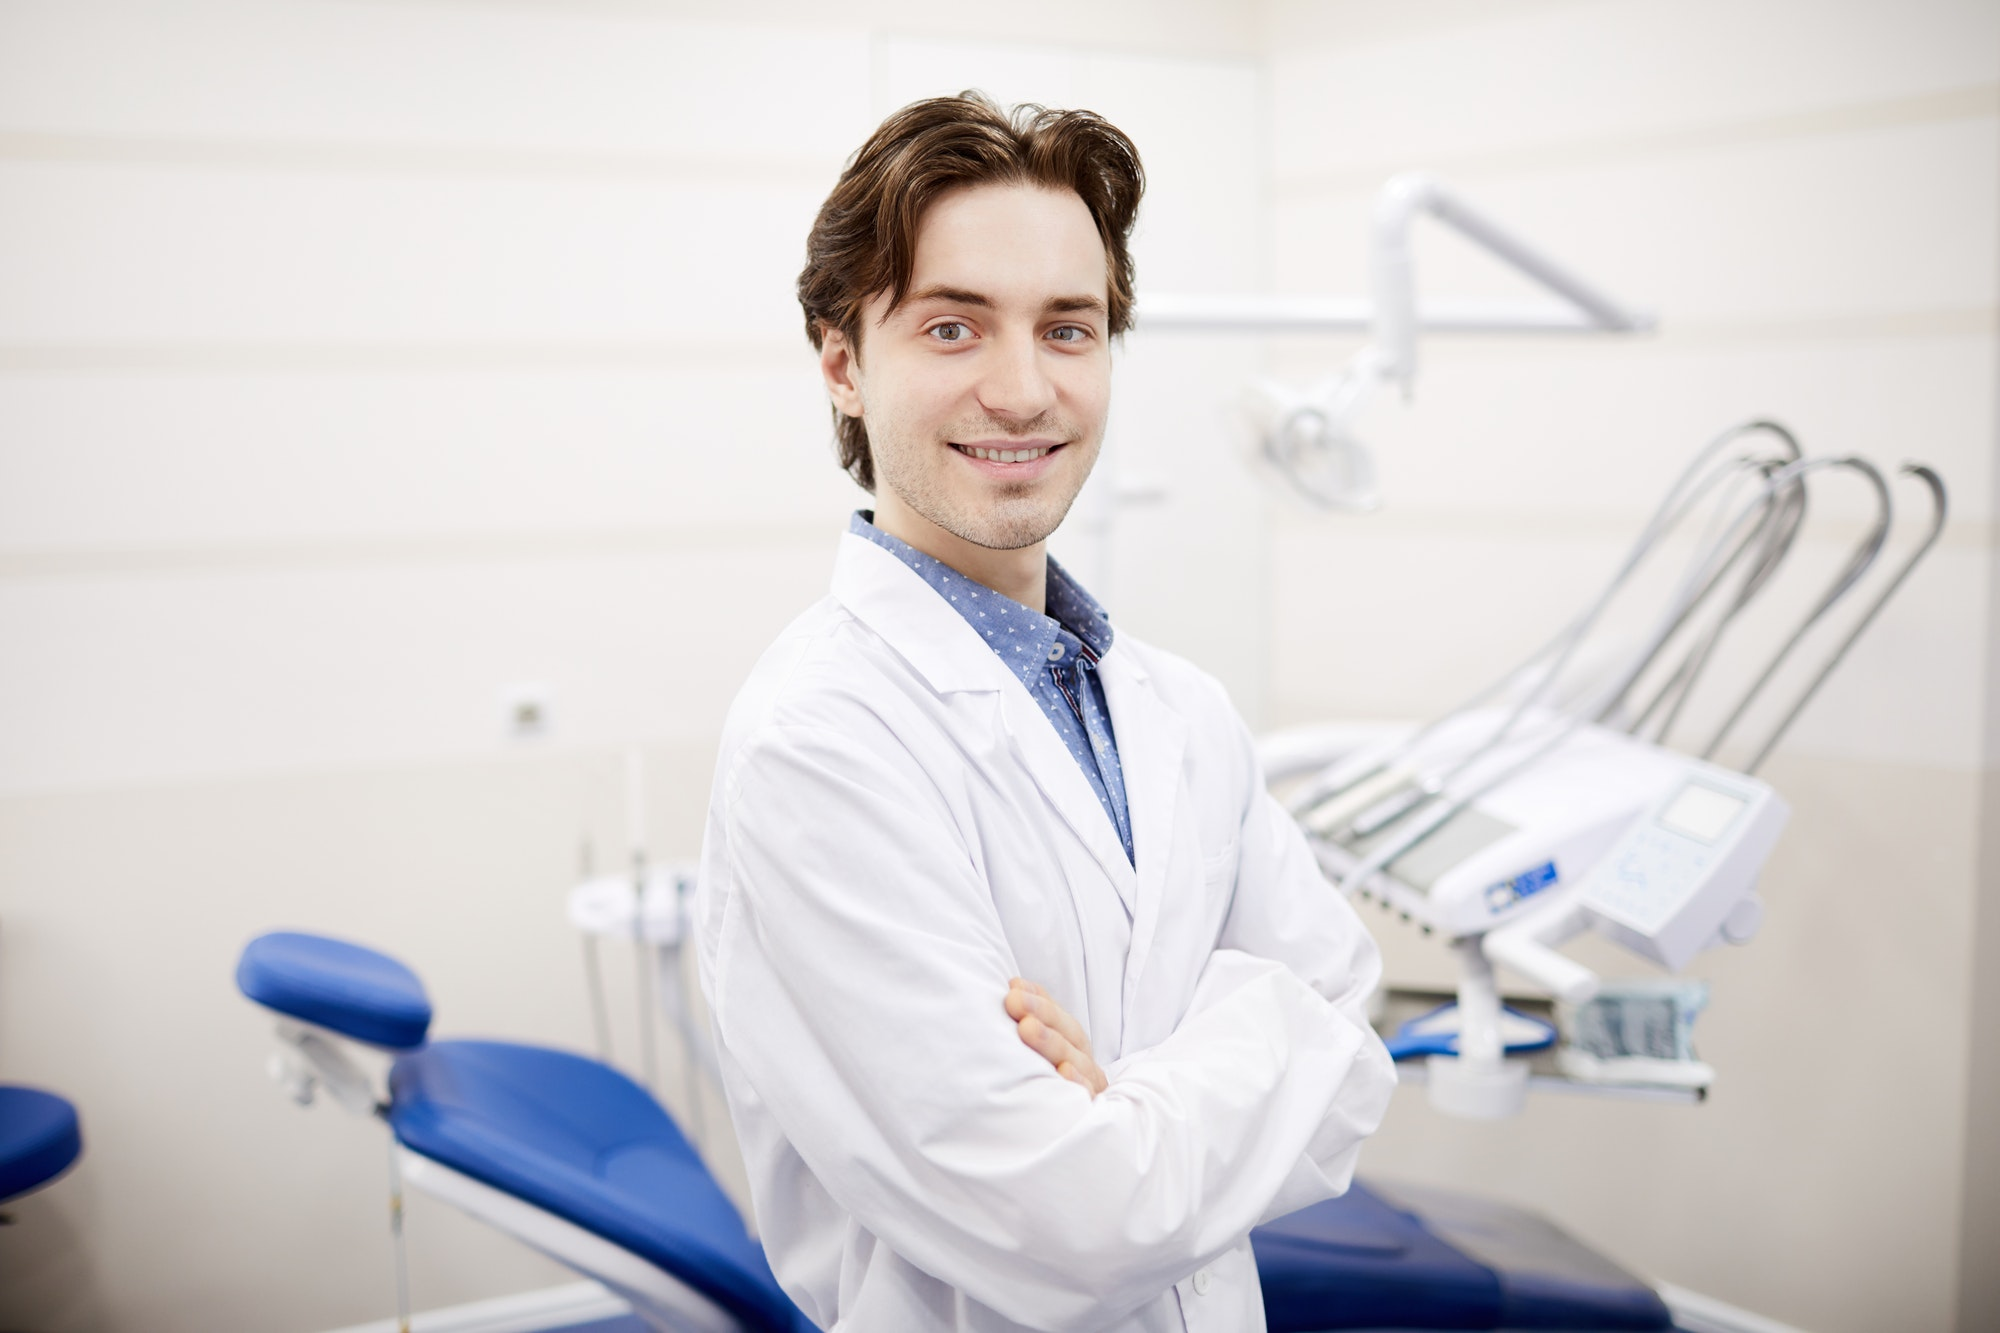 Young Dentist Posing